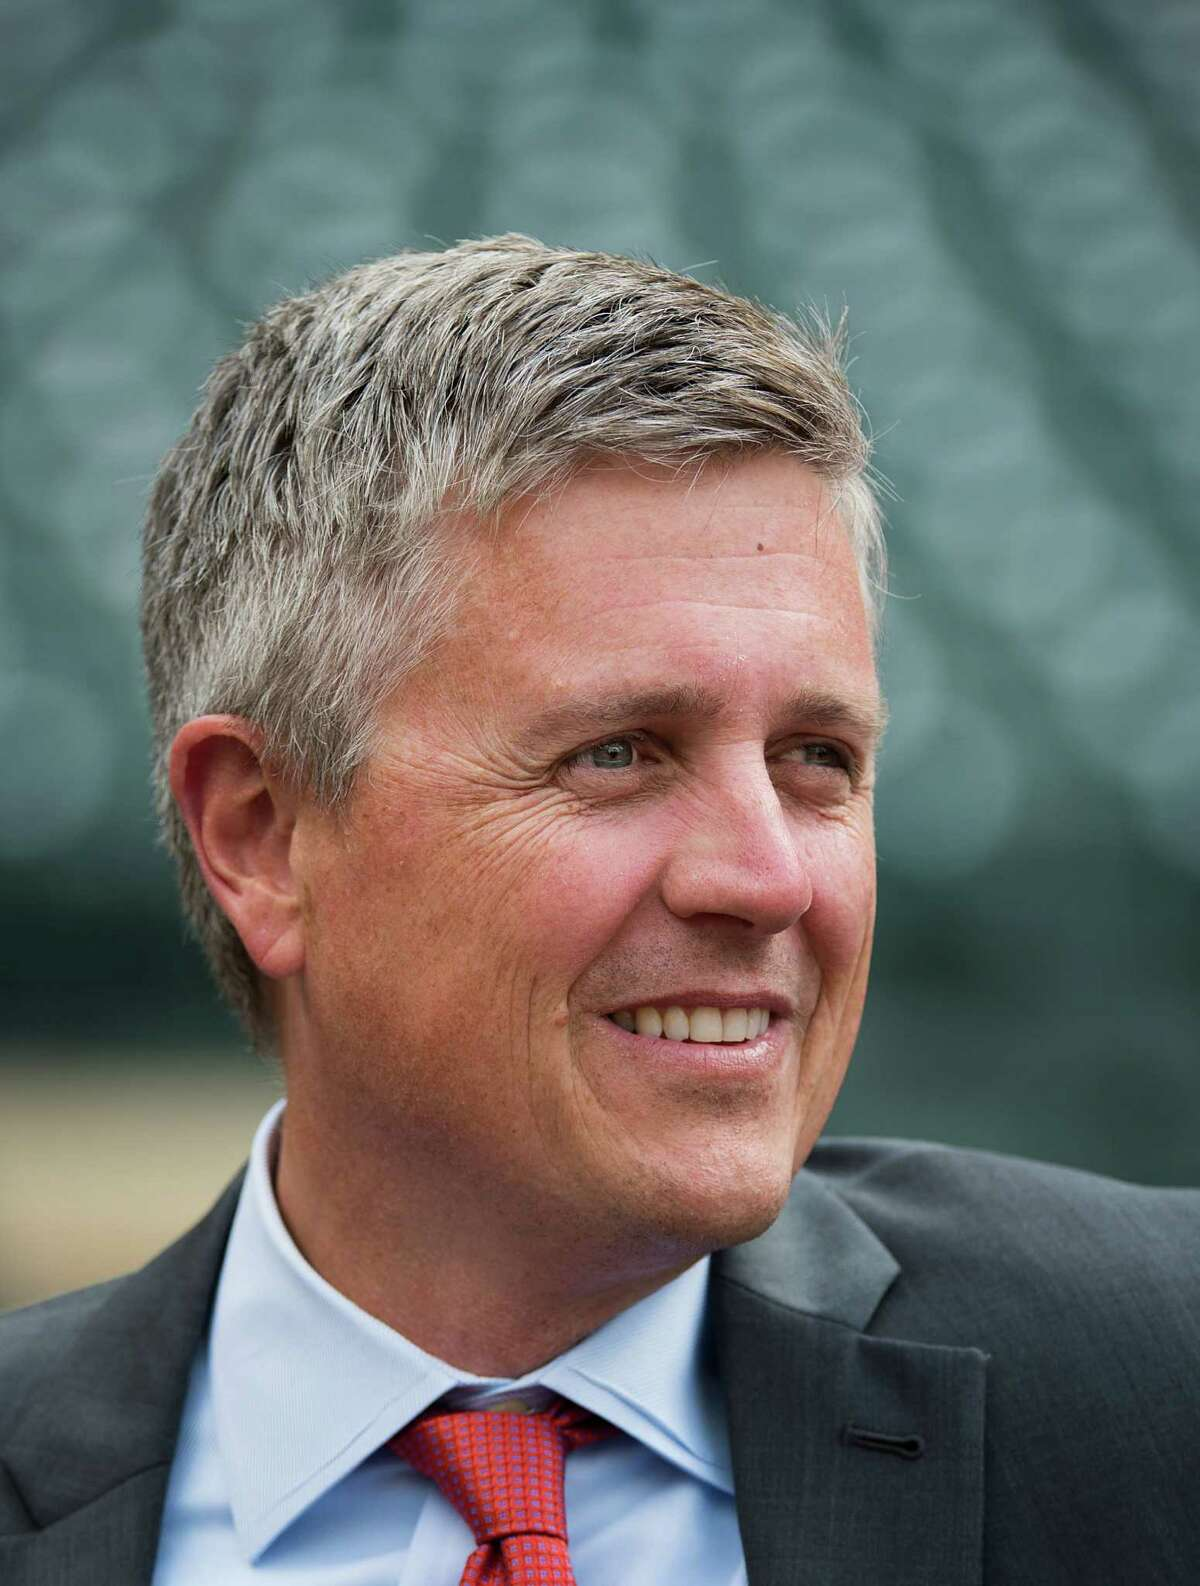 Houston Astros general manager Jeff Luhnow watches batting practice before an exhibition game against the Chicago Cubs at Minute Maid Park on Friday, March 29, 2013, in Houston. ( Smiley N. Pool / Houston Chronicle )